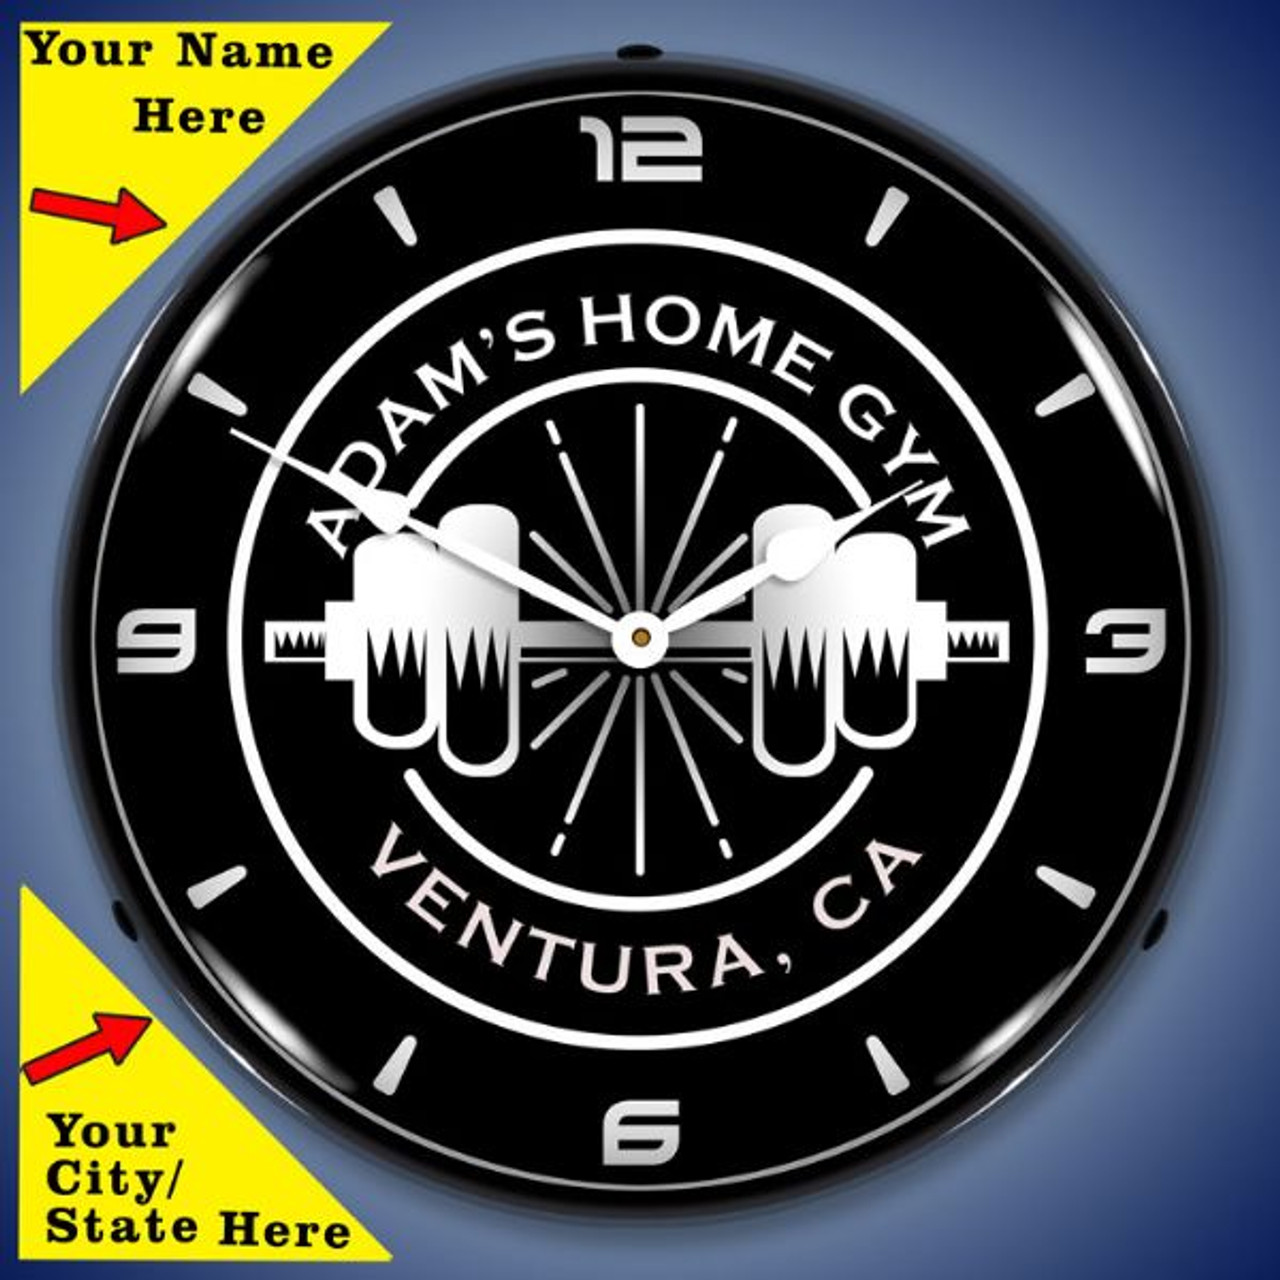 Personalized Home Gym LED Lighted Wall Clock 14 x 14 Inches